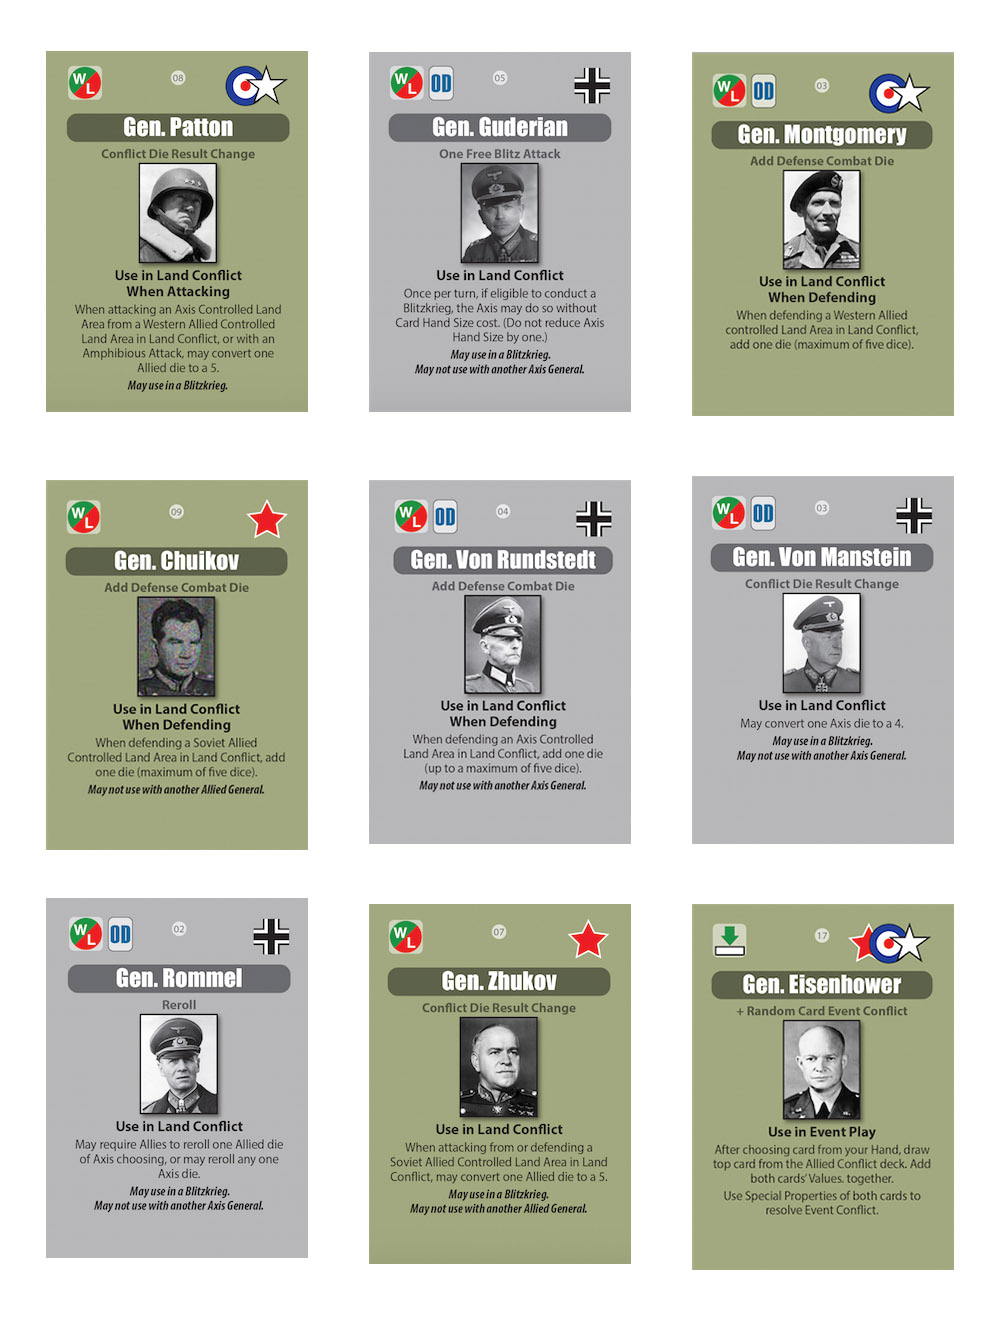 Hitler's Reich — The Reasons Why, and What the Cards Represent